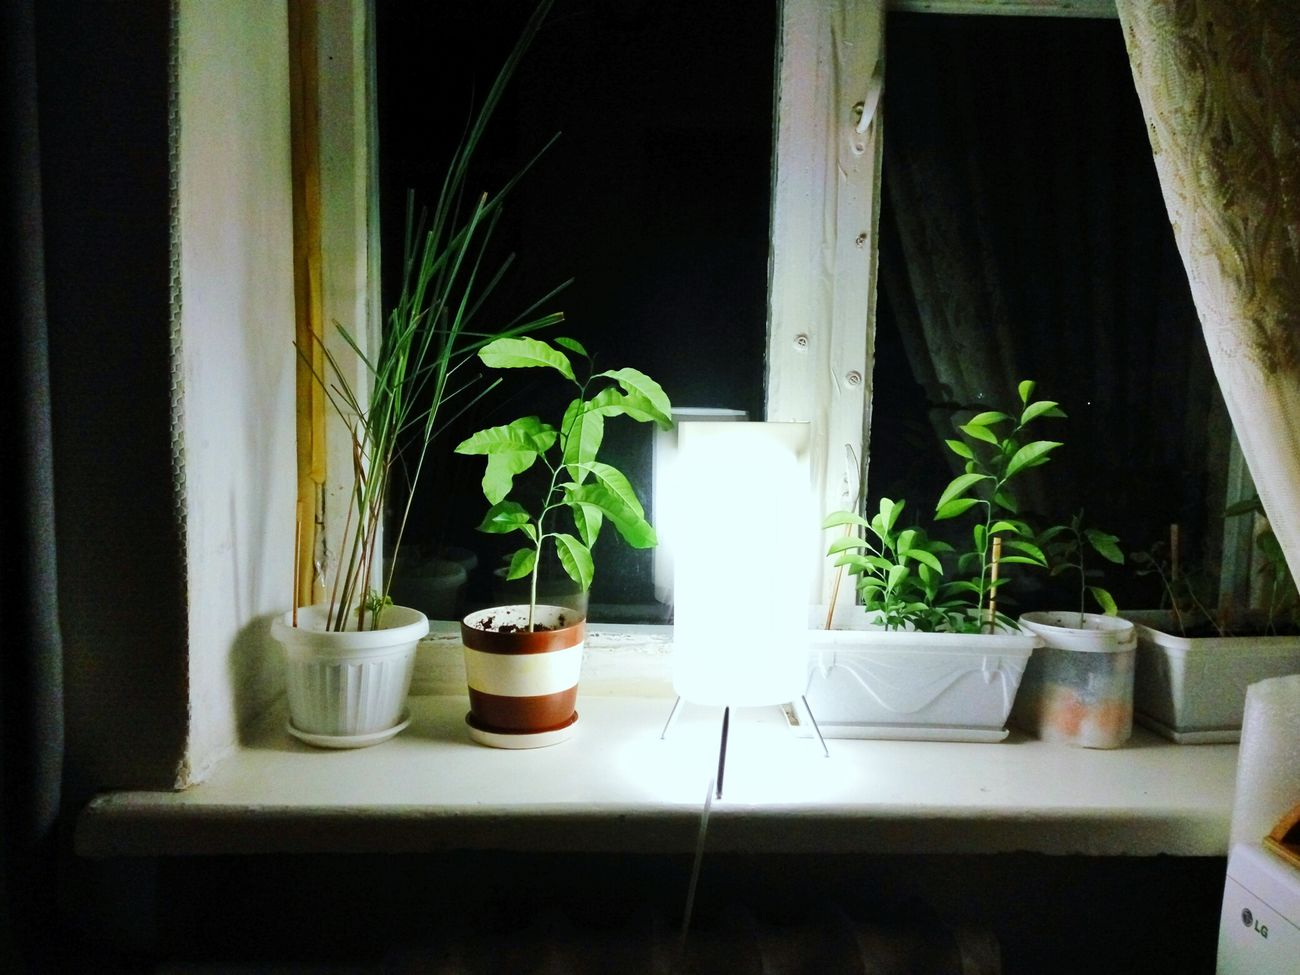 Night view near my window witb handmade lamp. Indoors  Table Plant Growth Flower Freshness Ukraine Fruits Plant Plants Growing Nature Natural BeautyFresh On Eyeem  Vegetarian Food Fresh On Eyeem  Growing Food Nobody Leaves Simplicity Interior Views Interior Style Lights